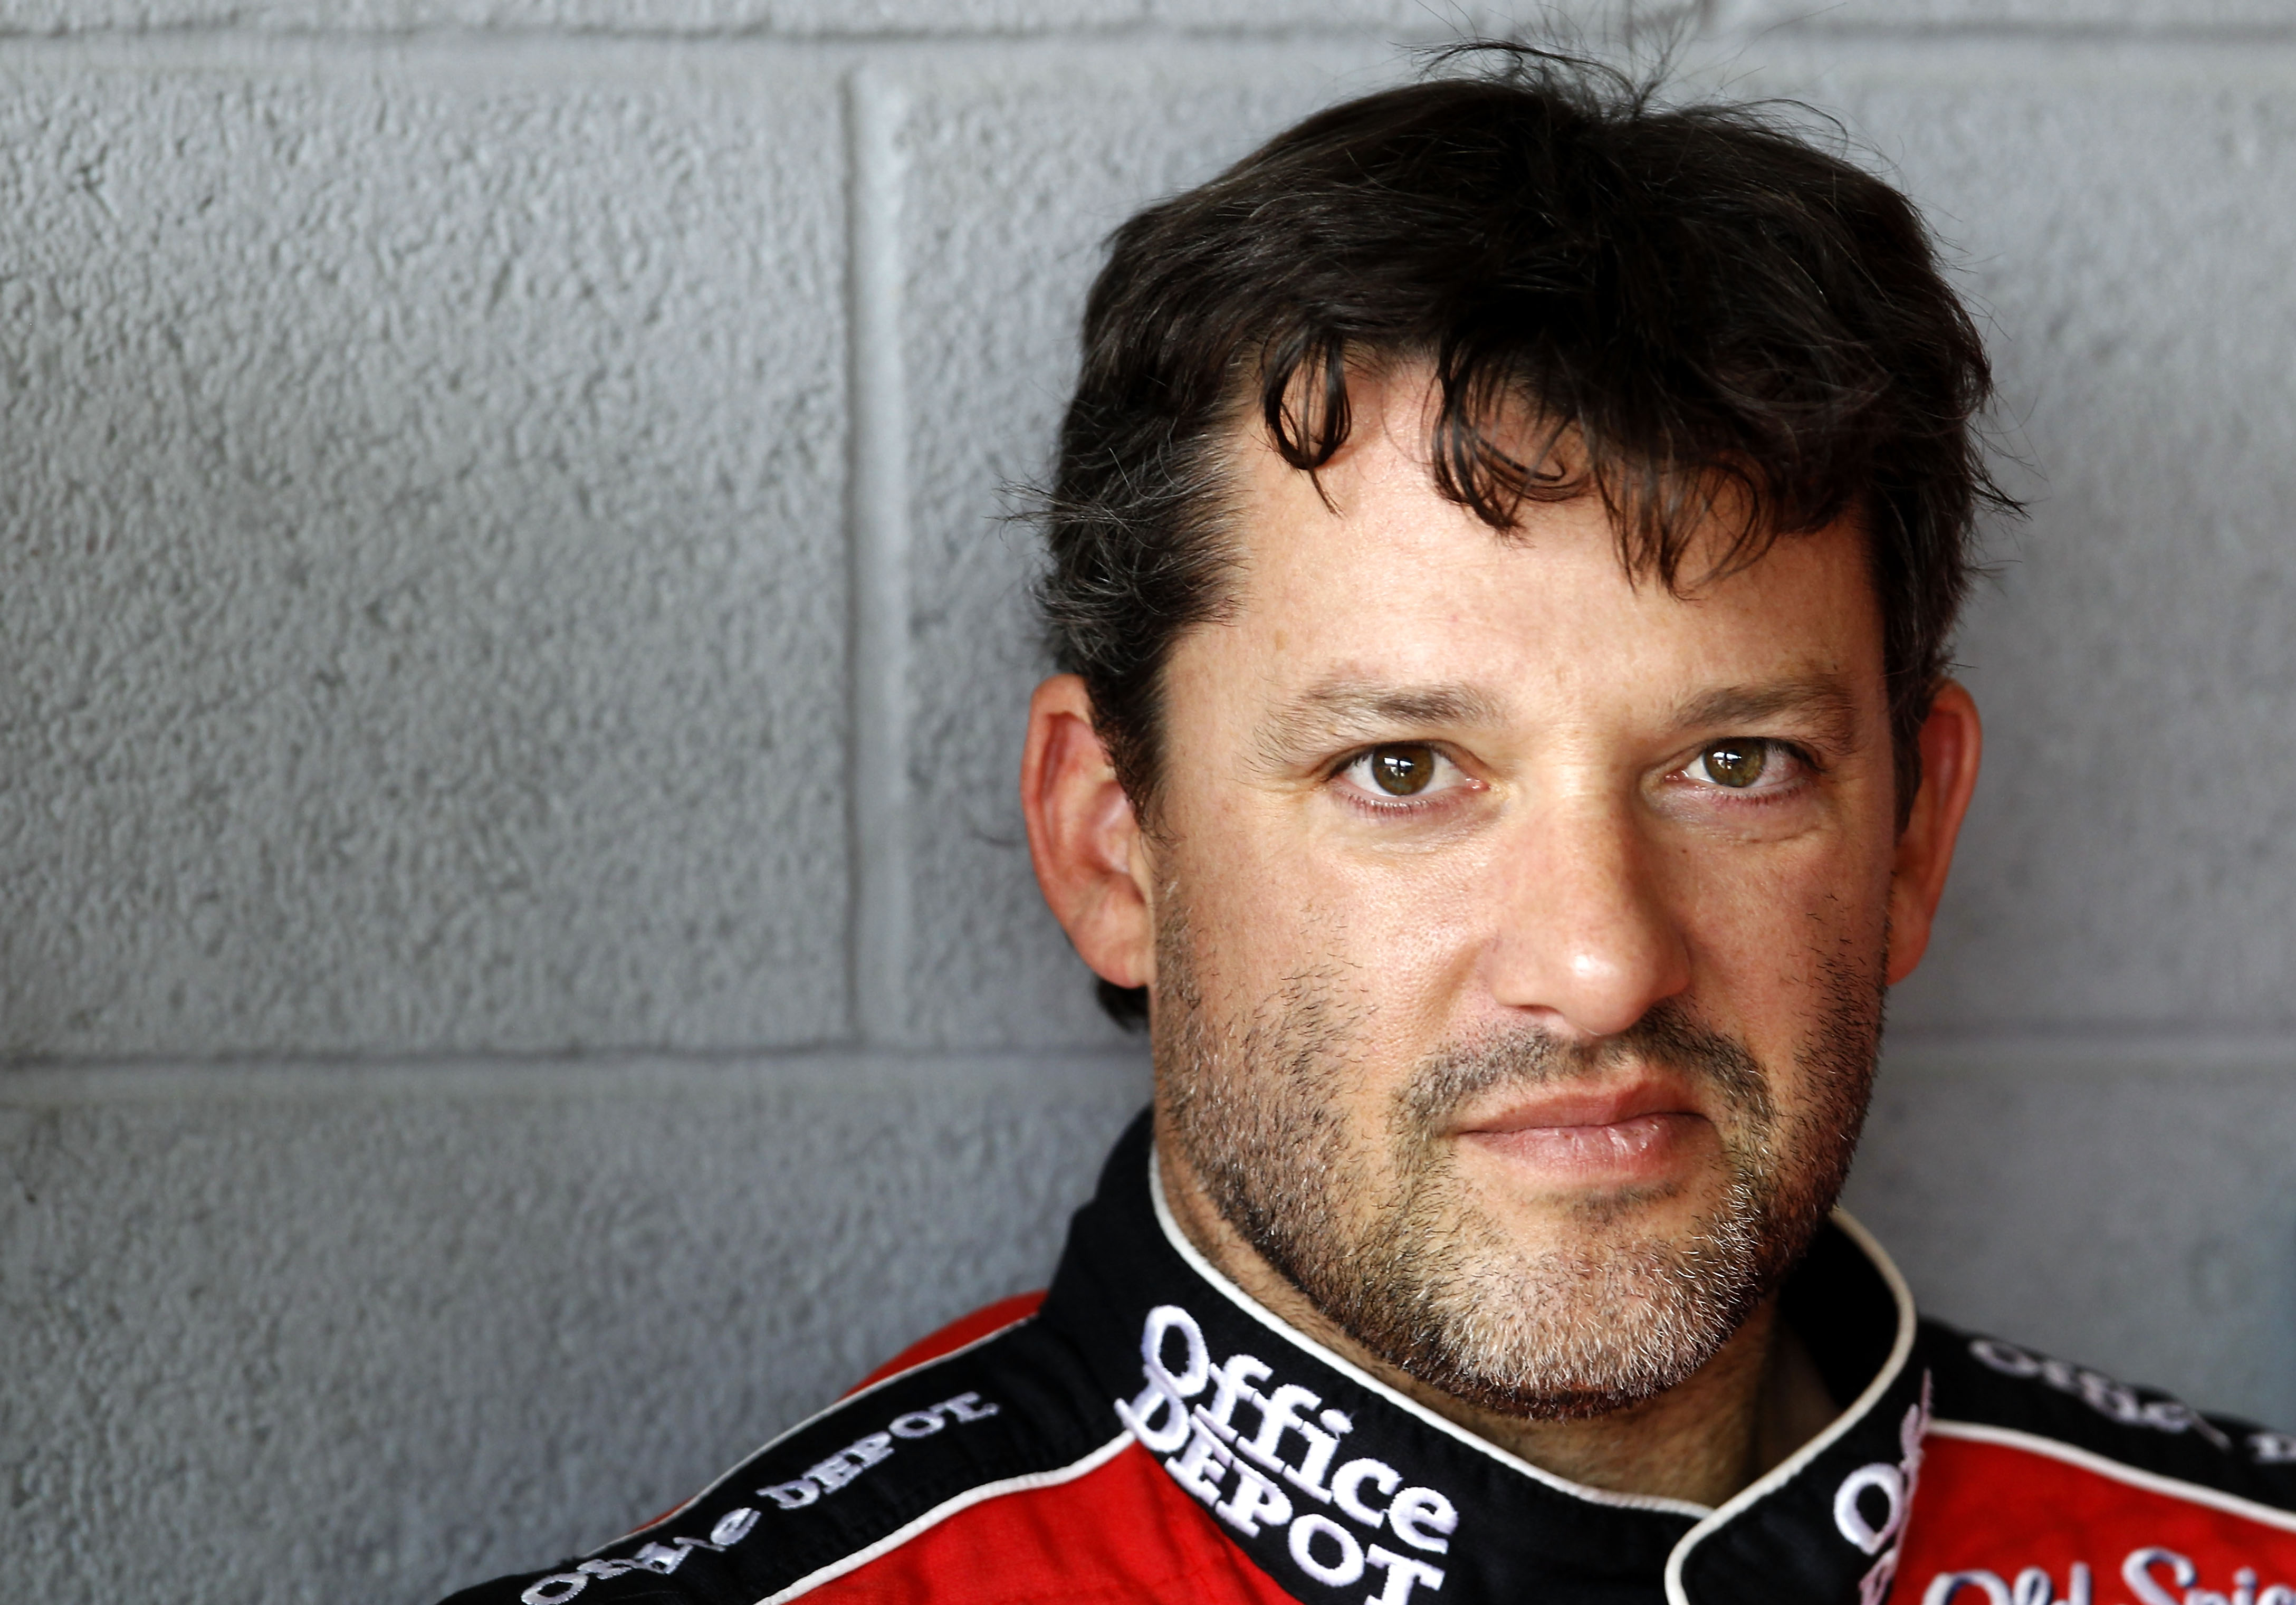 Tony Stewart had an off year by his standards but second year owner will be stronger than ever in 2011.